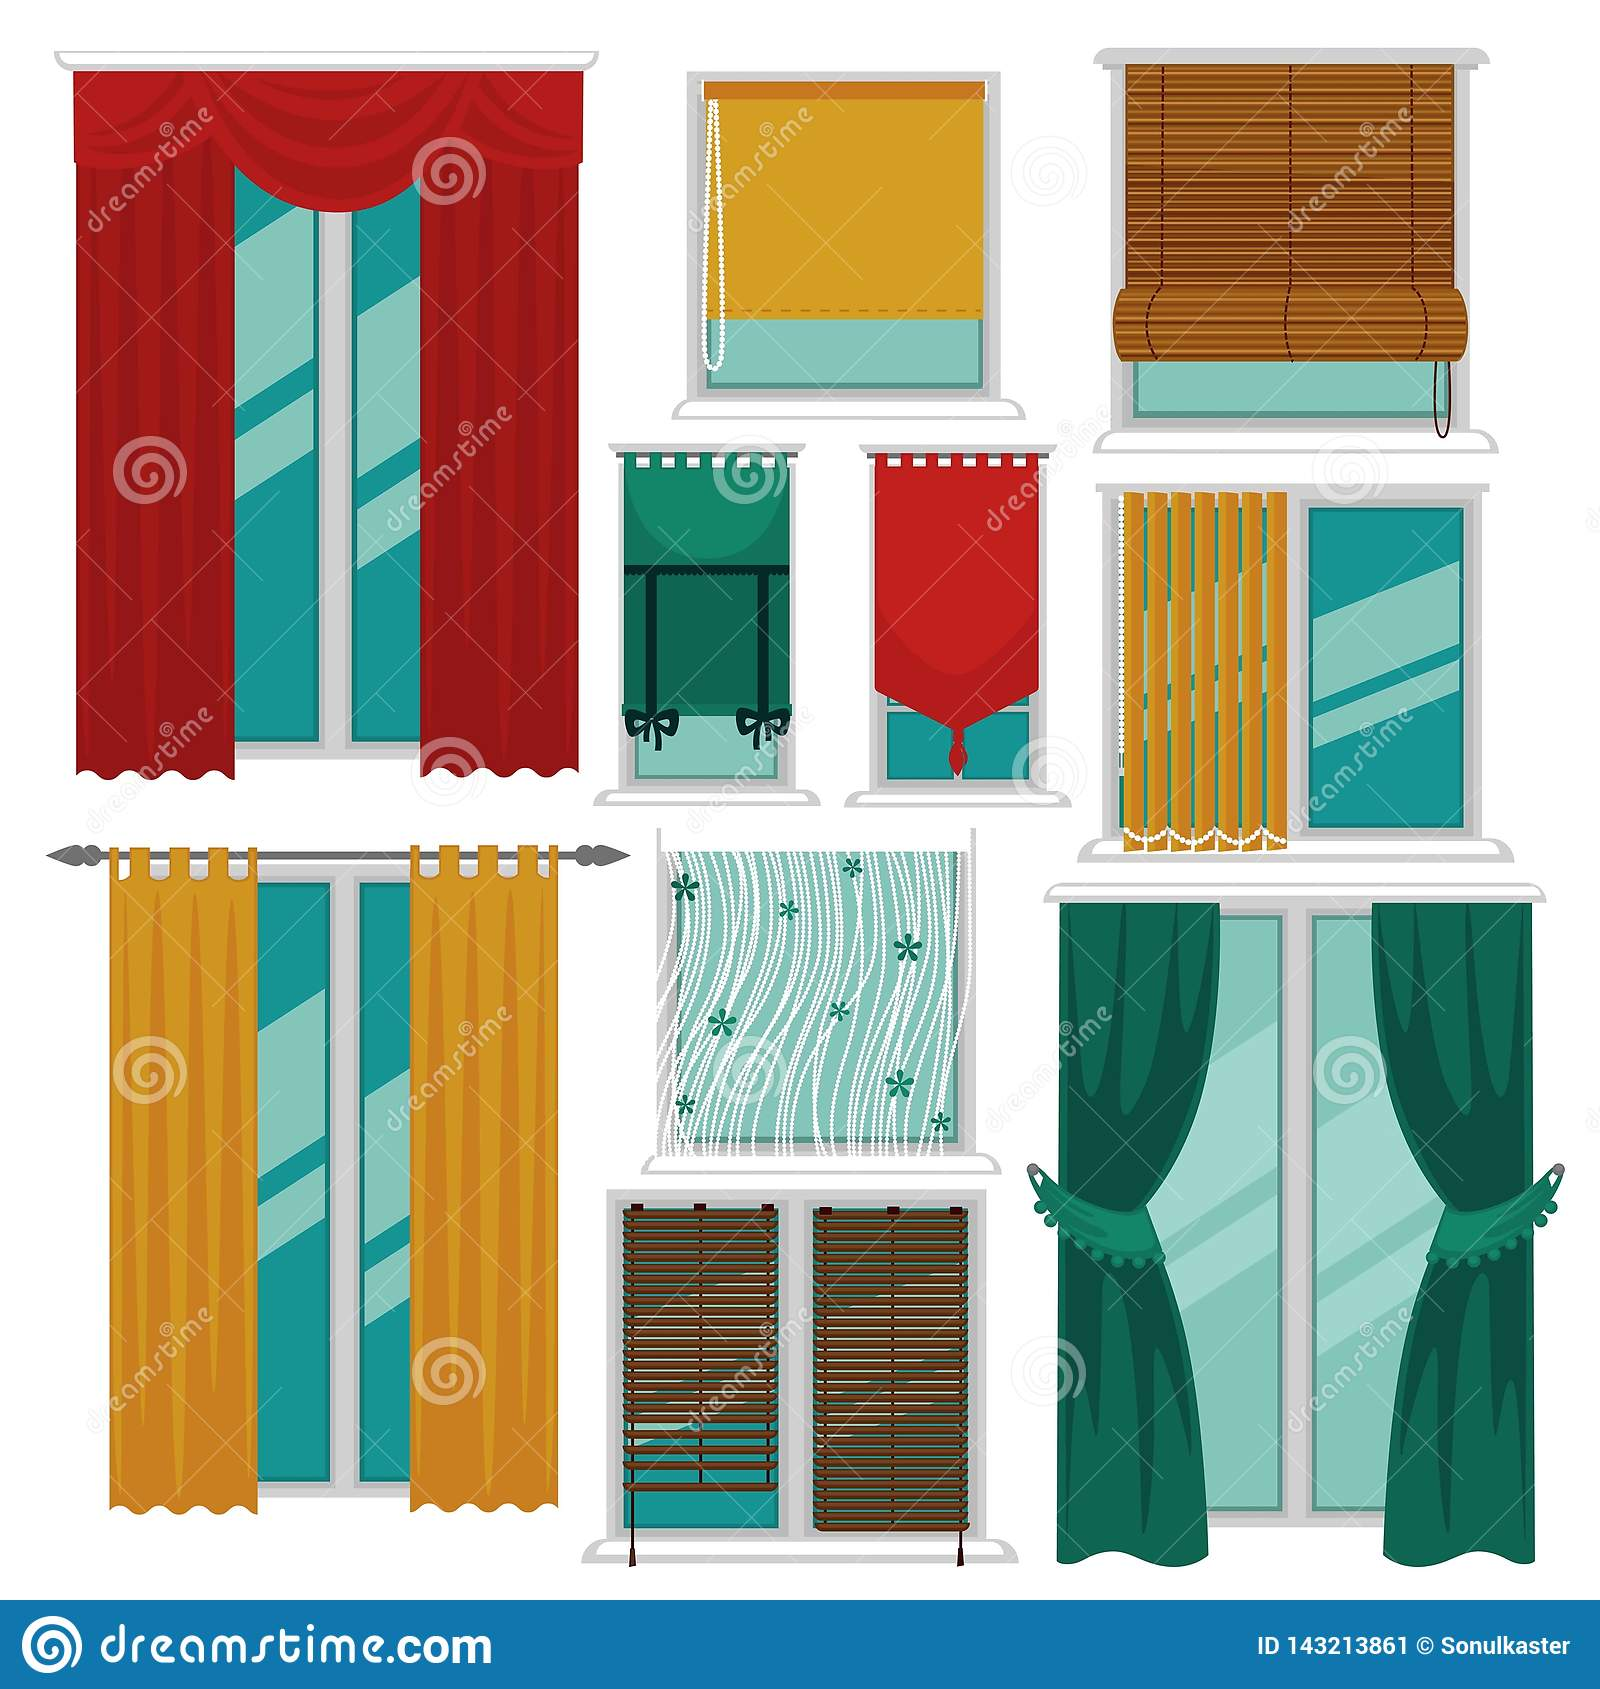 Curtains Blinds And Shutters On Windows Fabric And Wood